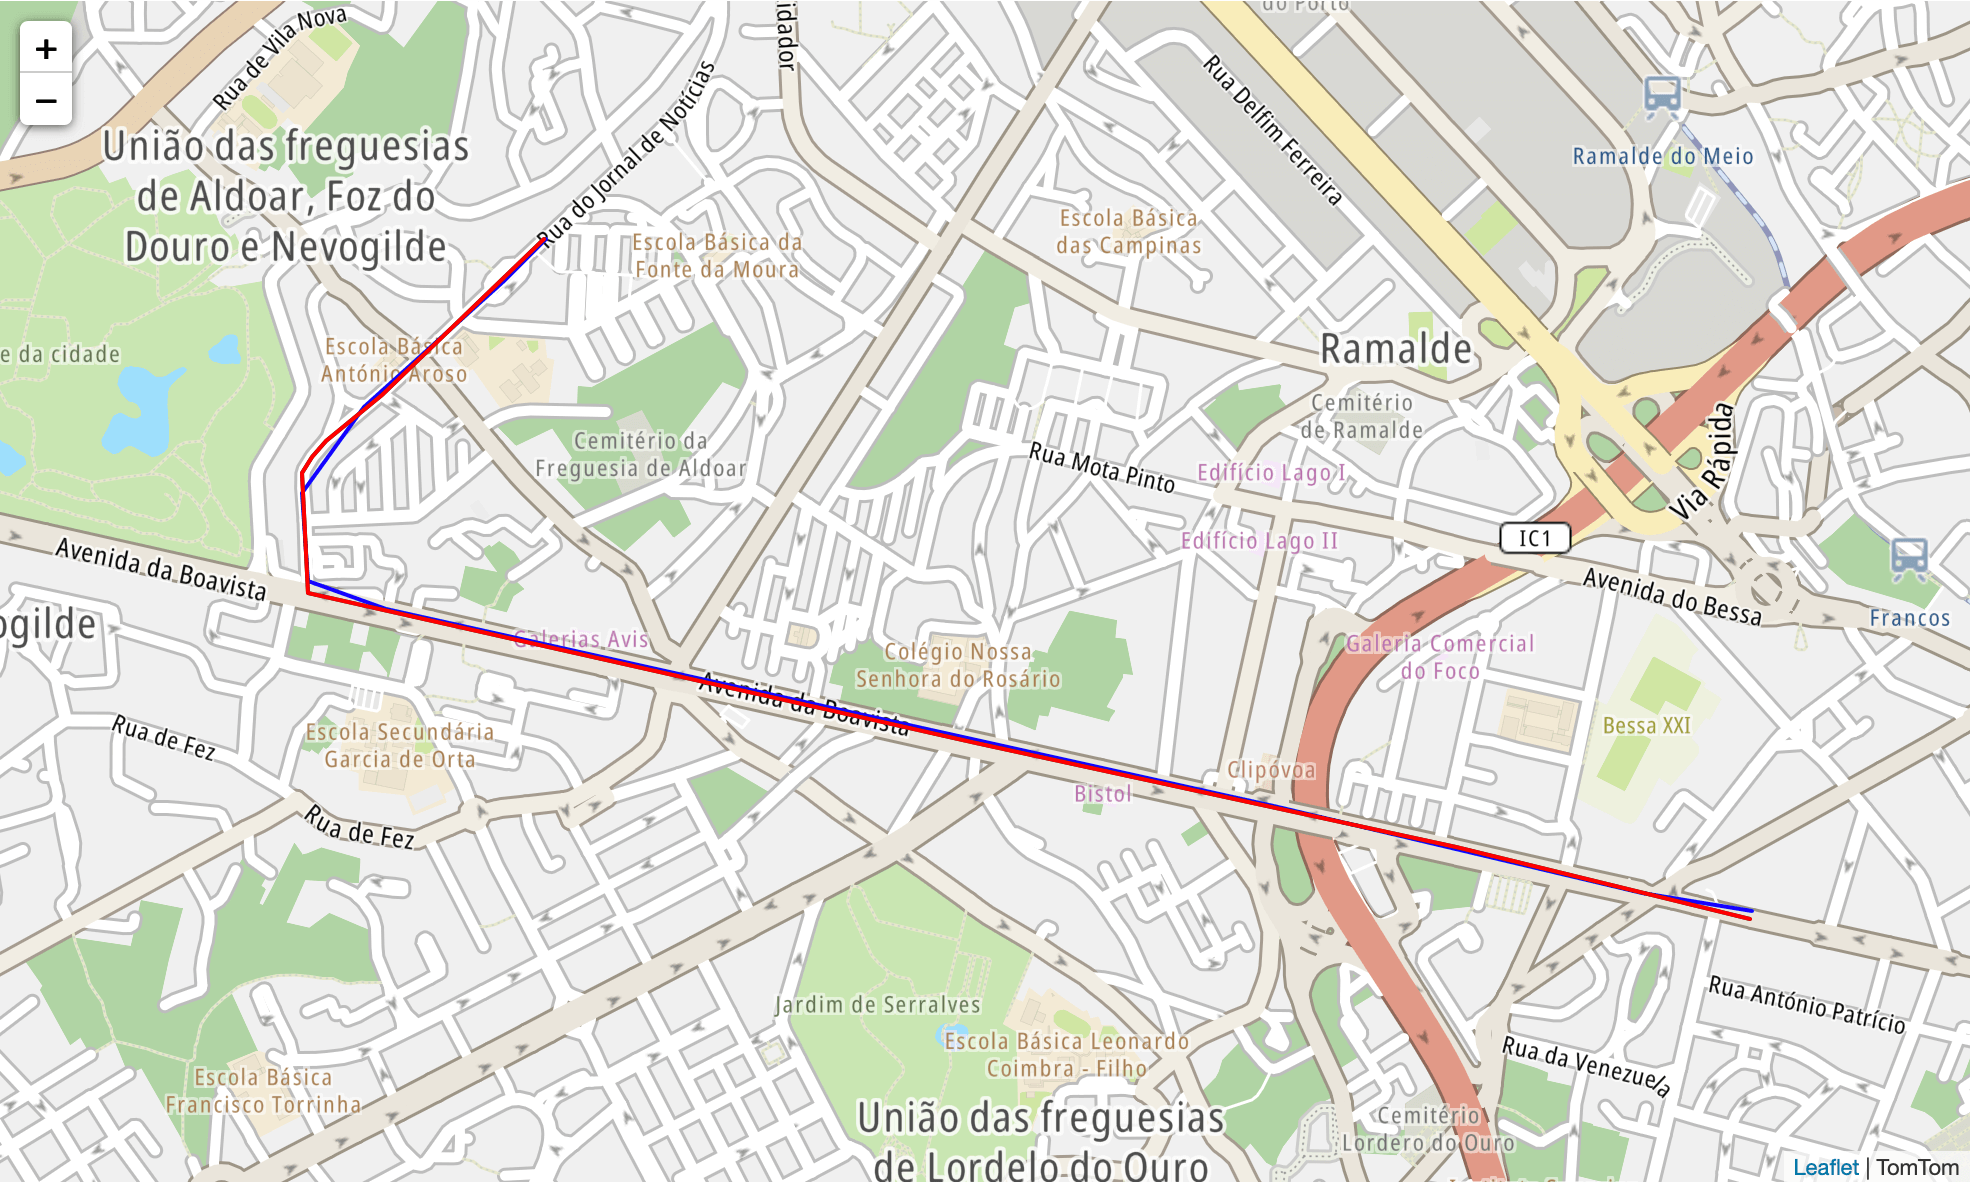 TomTom Map route fastest